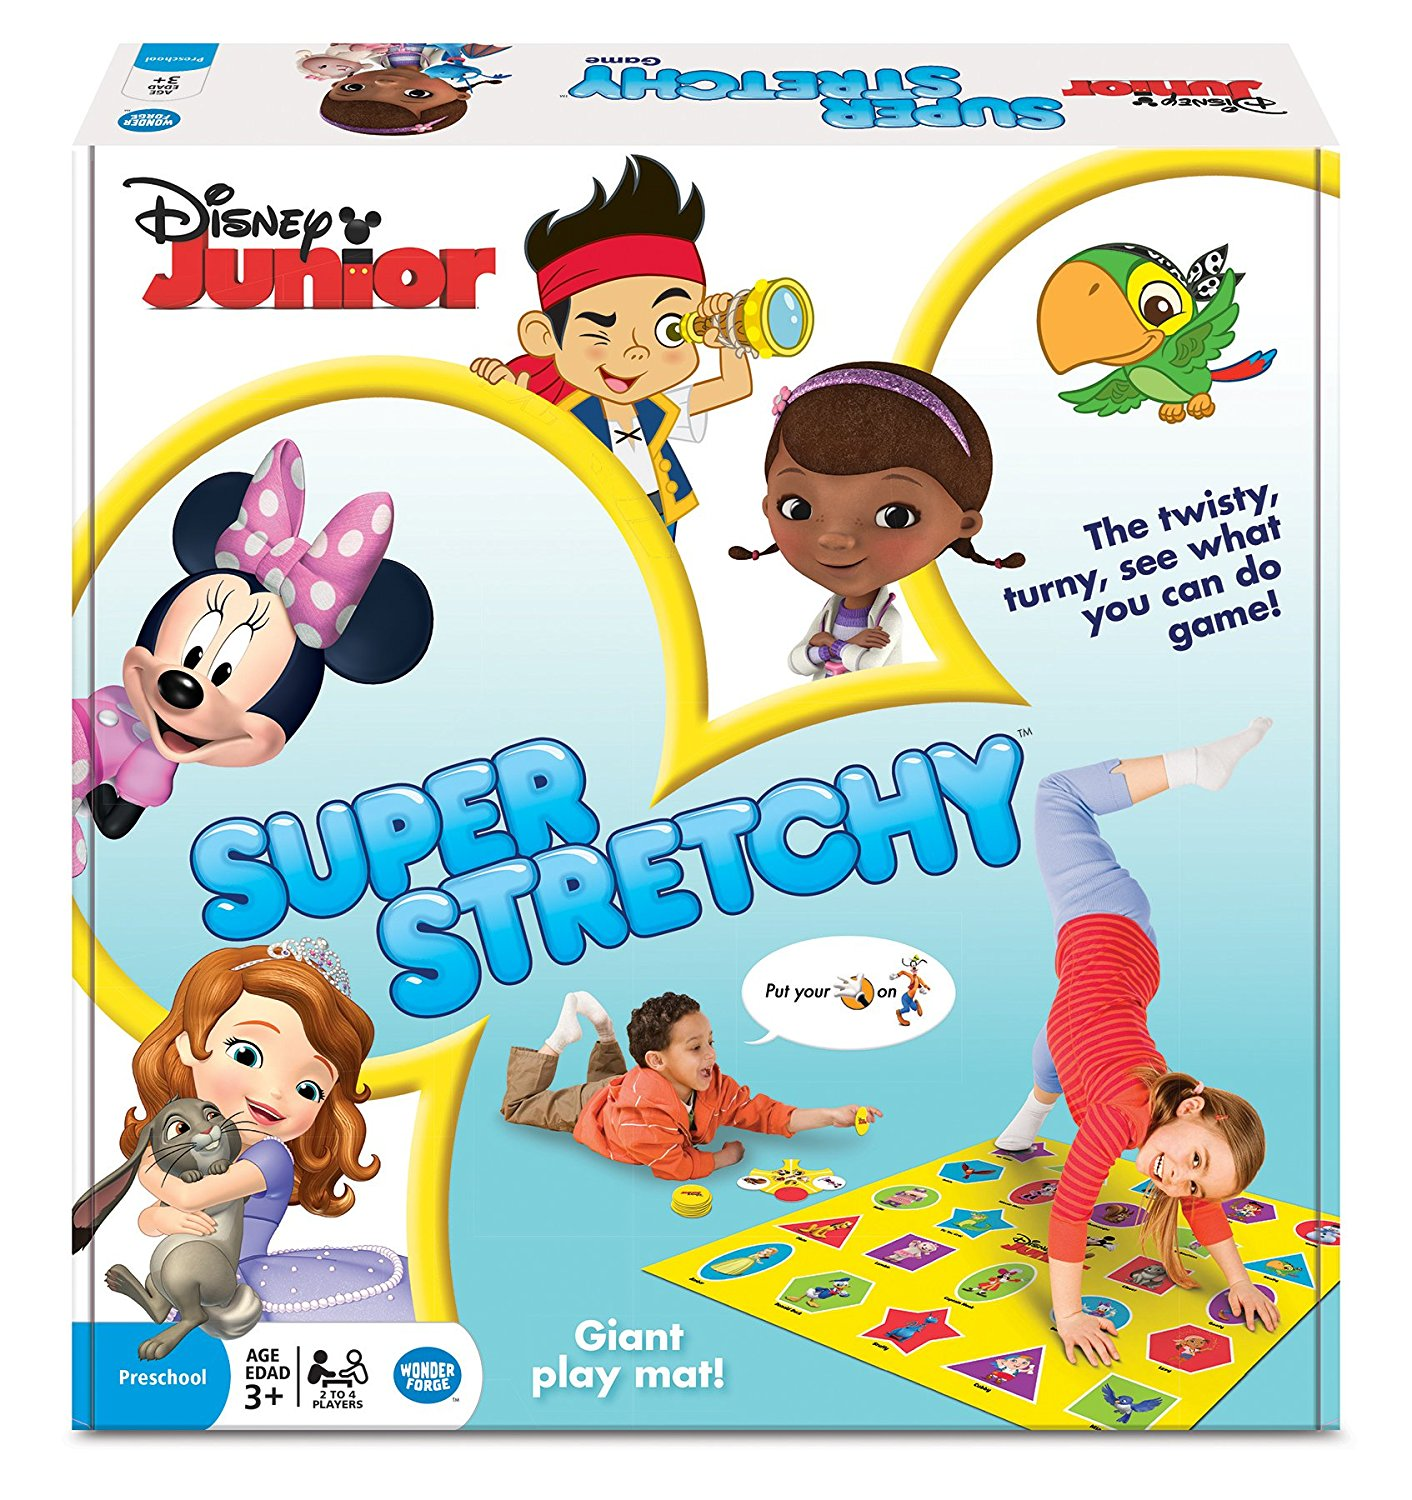 Best Disney Toys And Games For Kids : Musings of an average mom best games for young kids